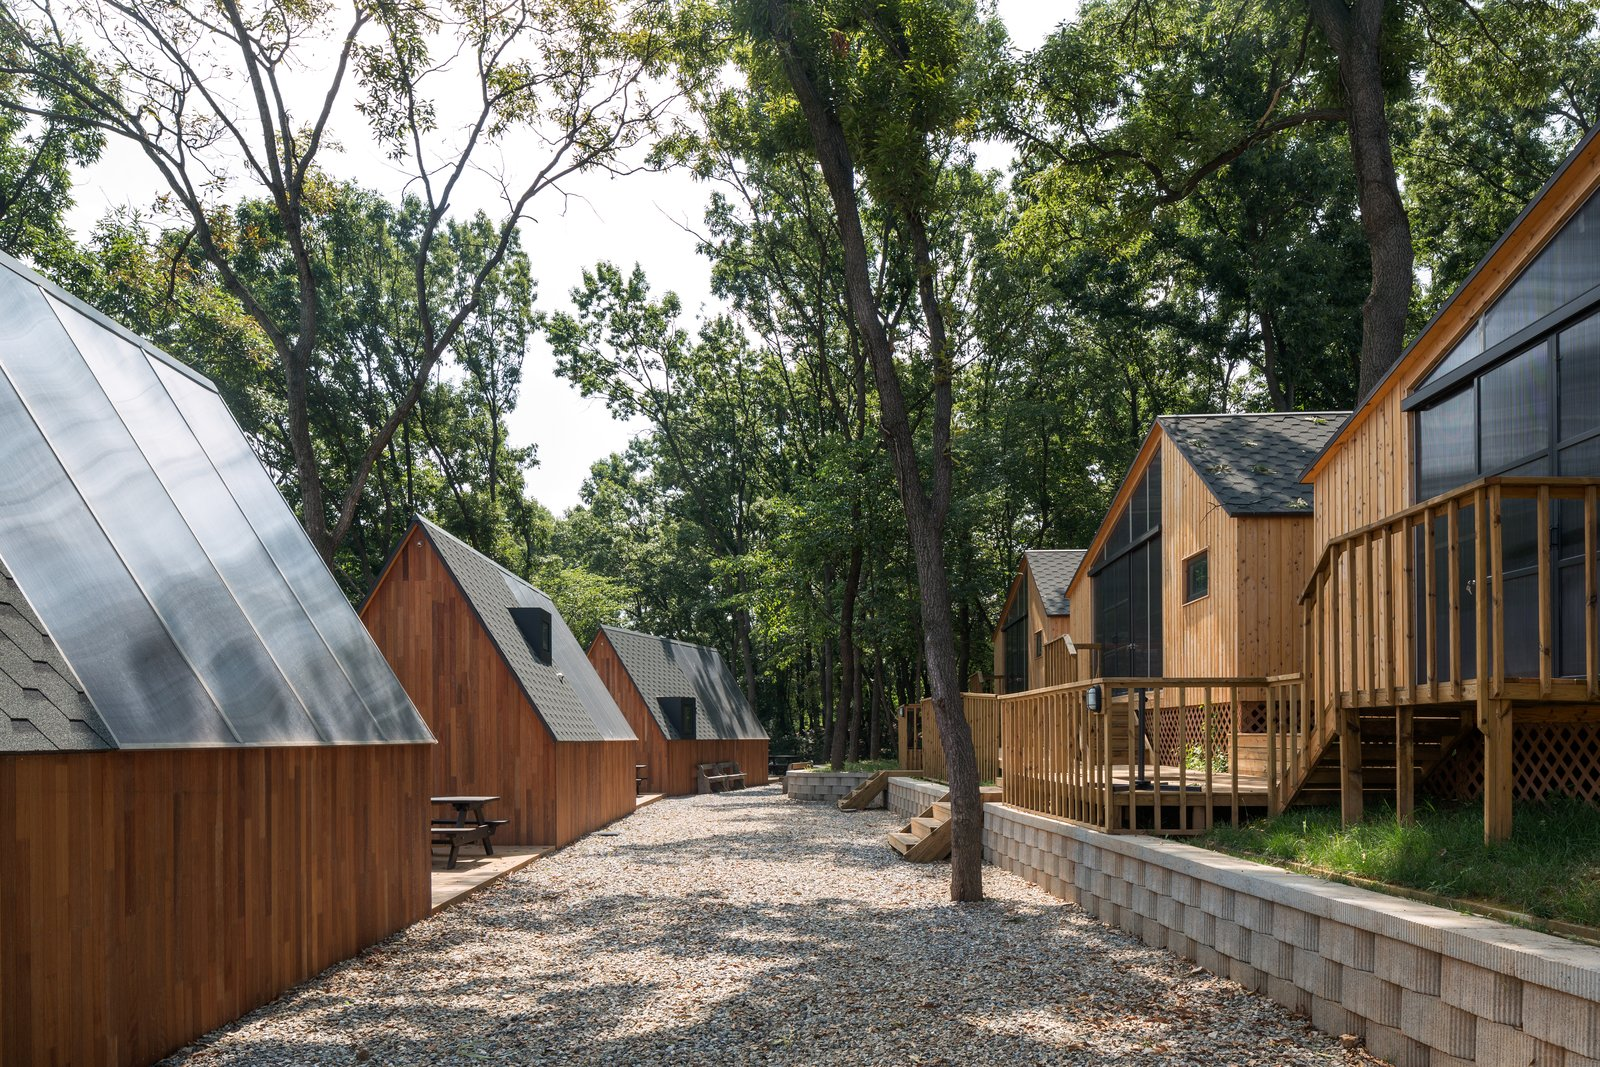 Photo 7 of 11 in A Camping Village in South Korea Draws Inspiration From an Iconic Fairy Tale